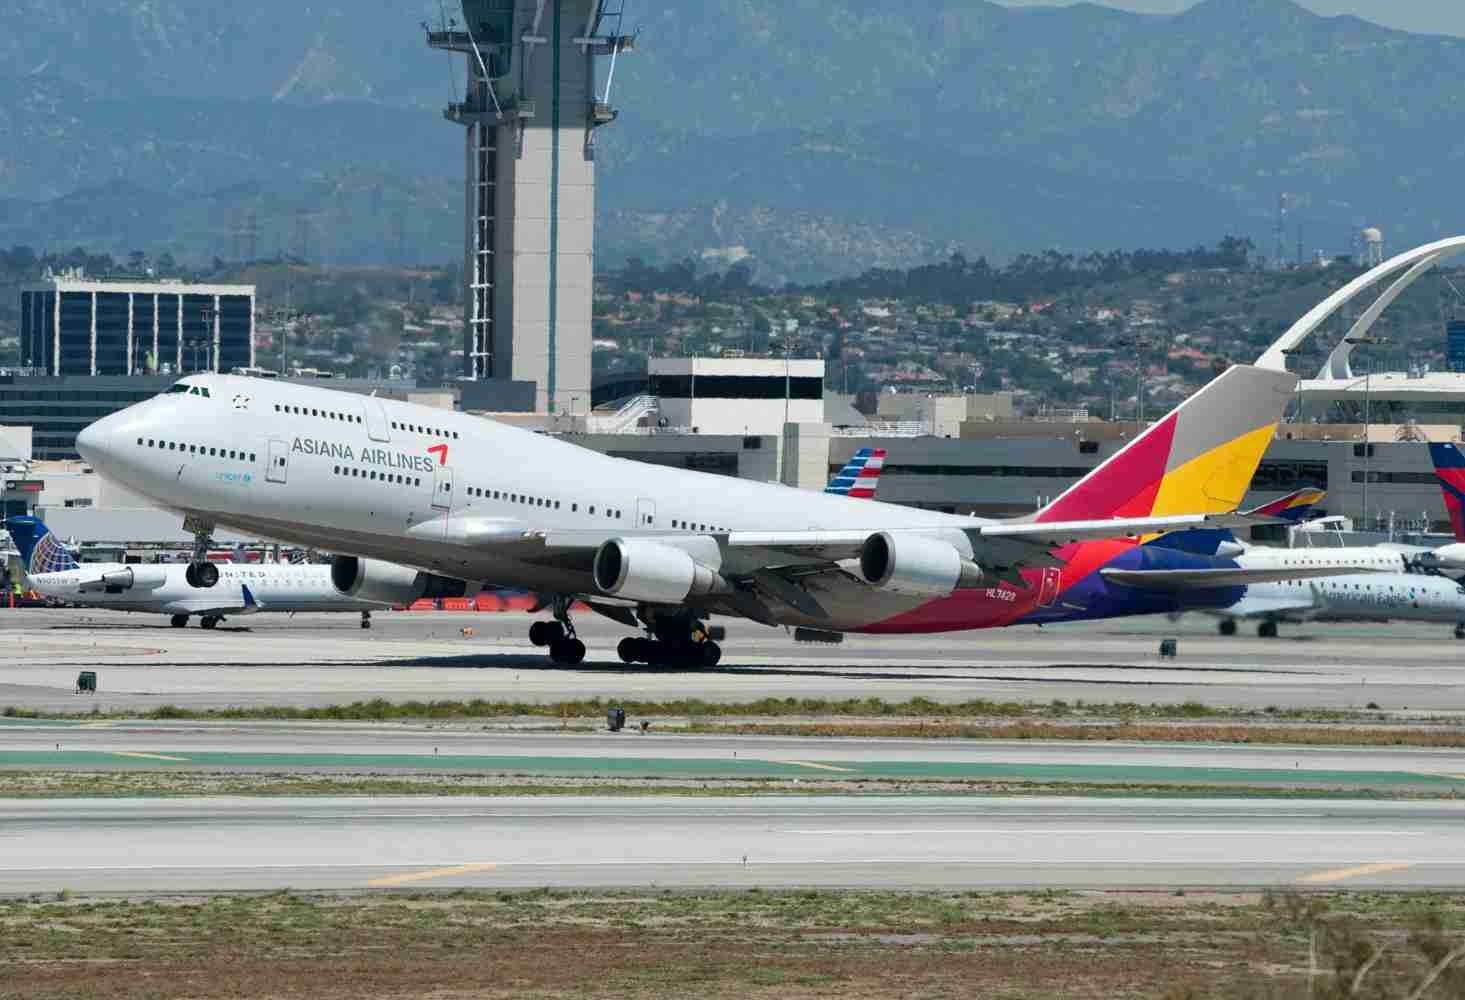 An Asiana Airlines 747-400 at LAX (Photo by Alberto Riva/The Points Guy)